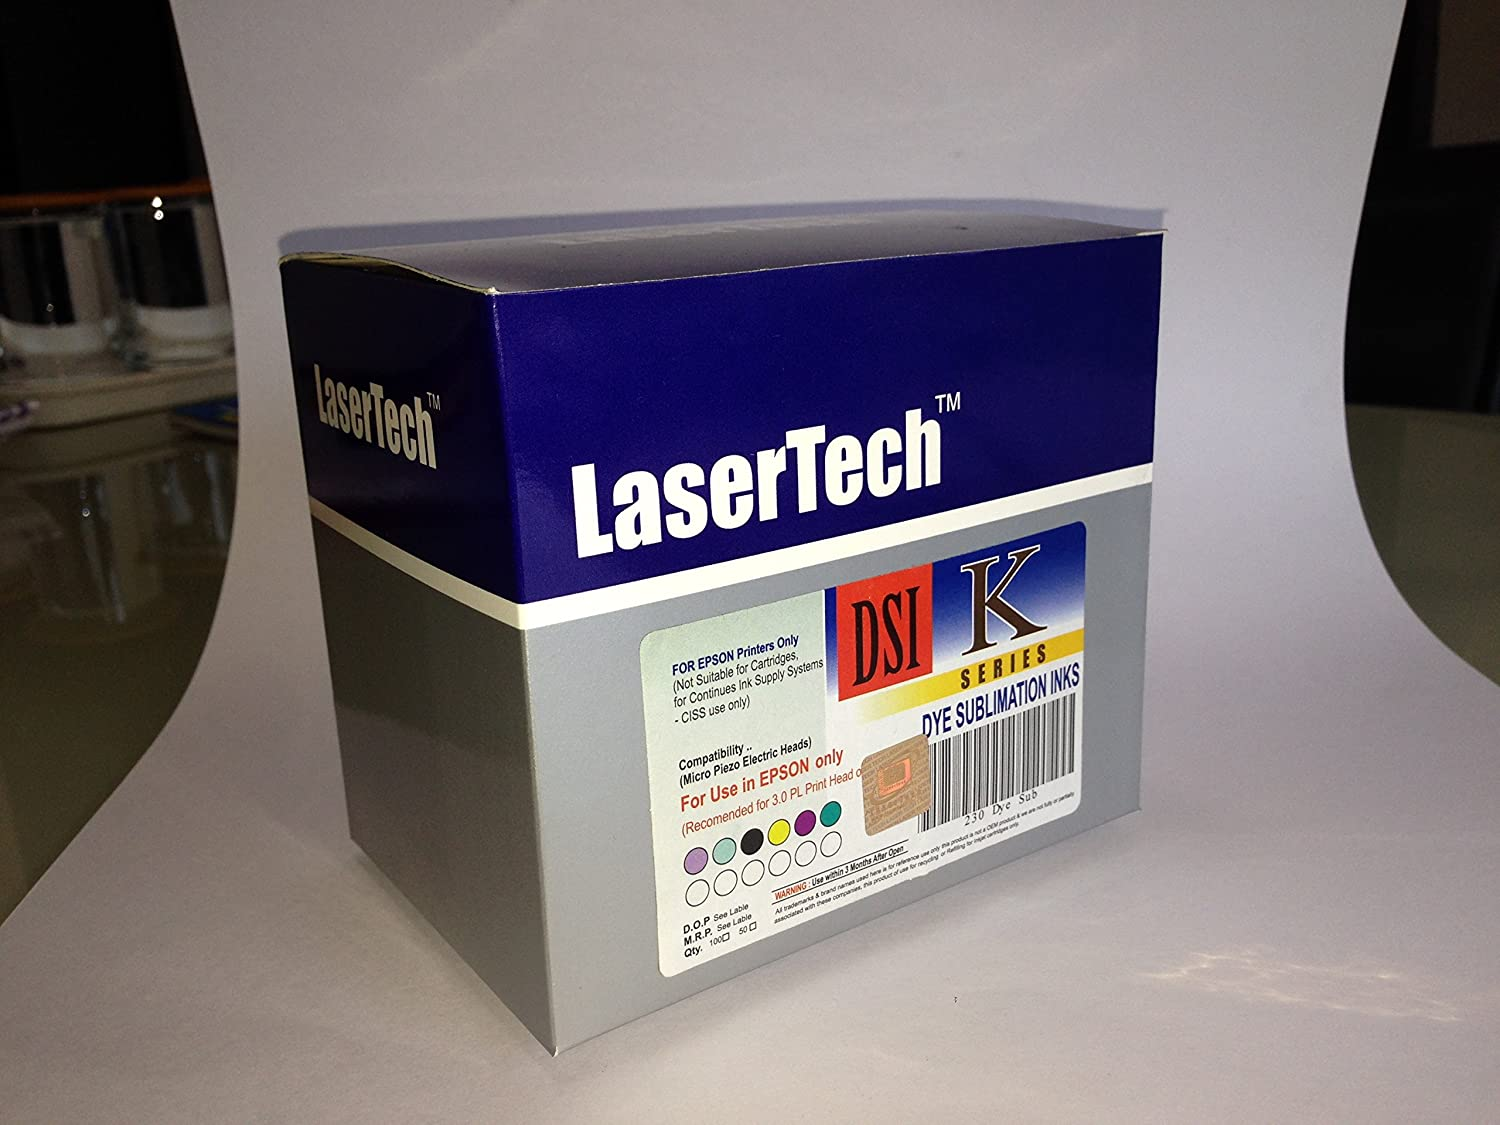 Buy Lasertech Sublimation Inks For Epson 6 Colour Print Head 1390 L1800 New Original Printers L110 L210 L1300 T60 600 Online At Low Prices In India